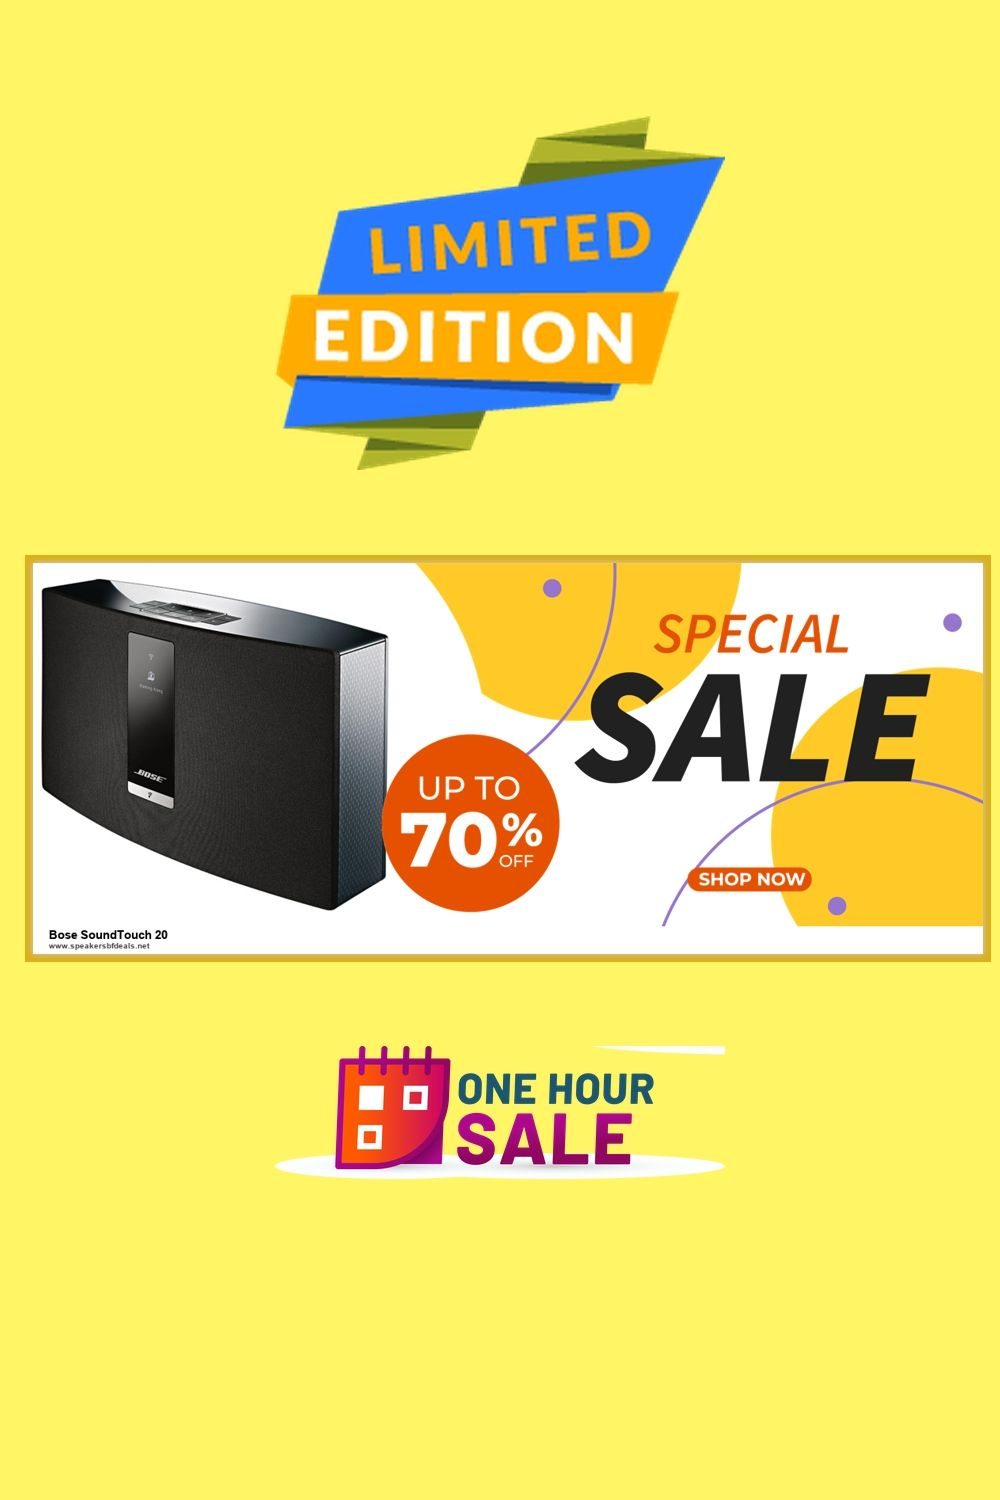 11 Best Bose Soundtouch 20 Black Friday Deals Coupons 2020 In 2020 Black Friday Bose Black Friday Cyber Monday